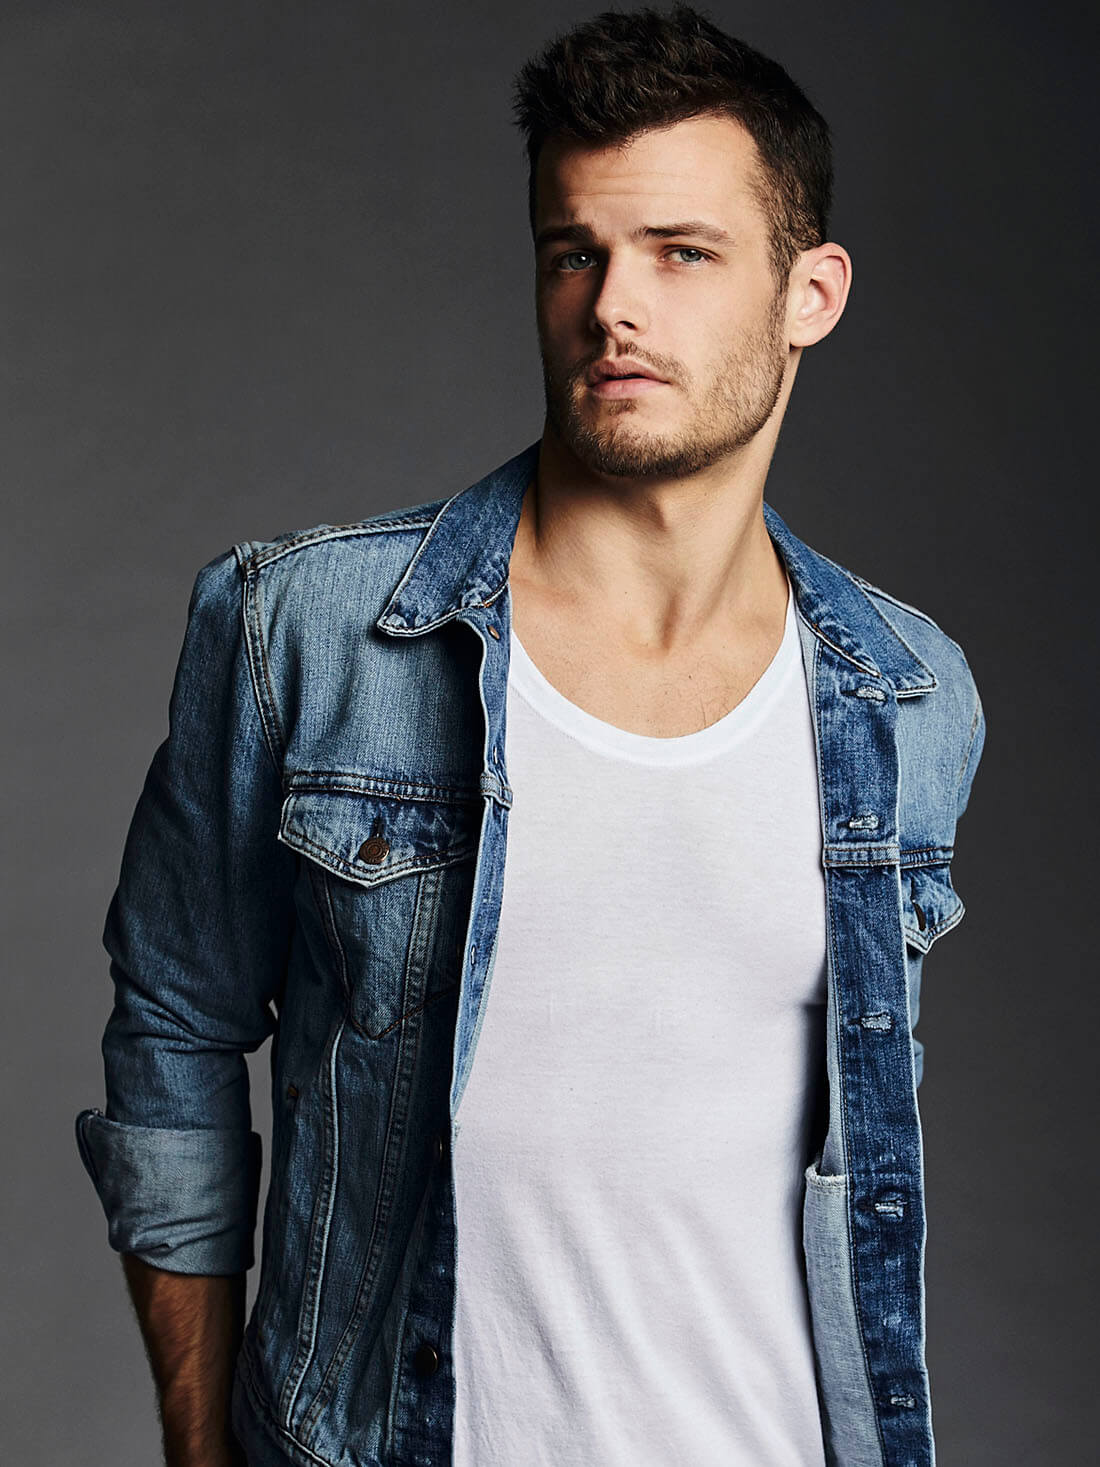 Chillin' with Michael Mealor, denim shirt, portrait